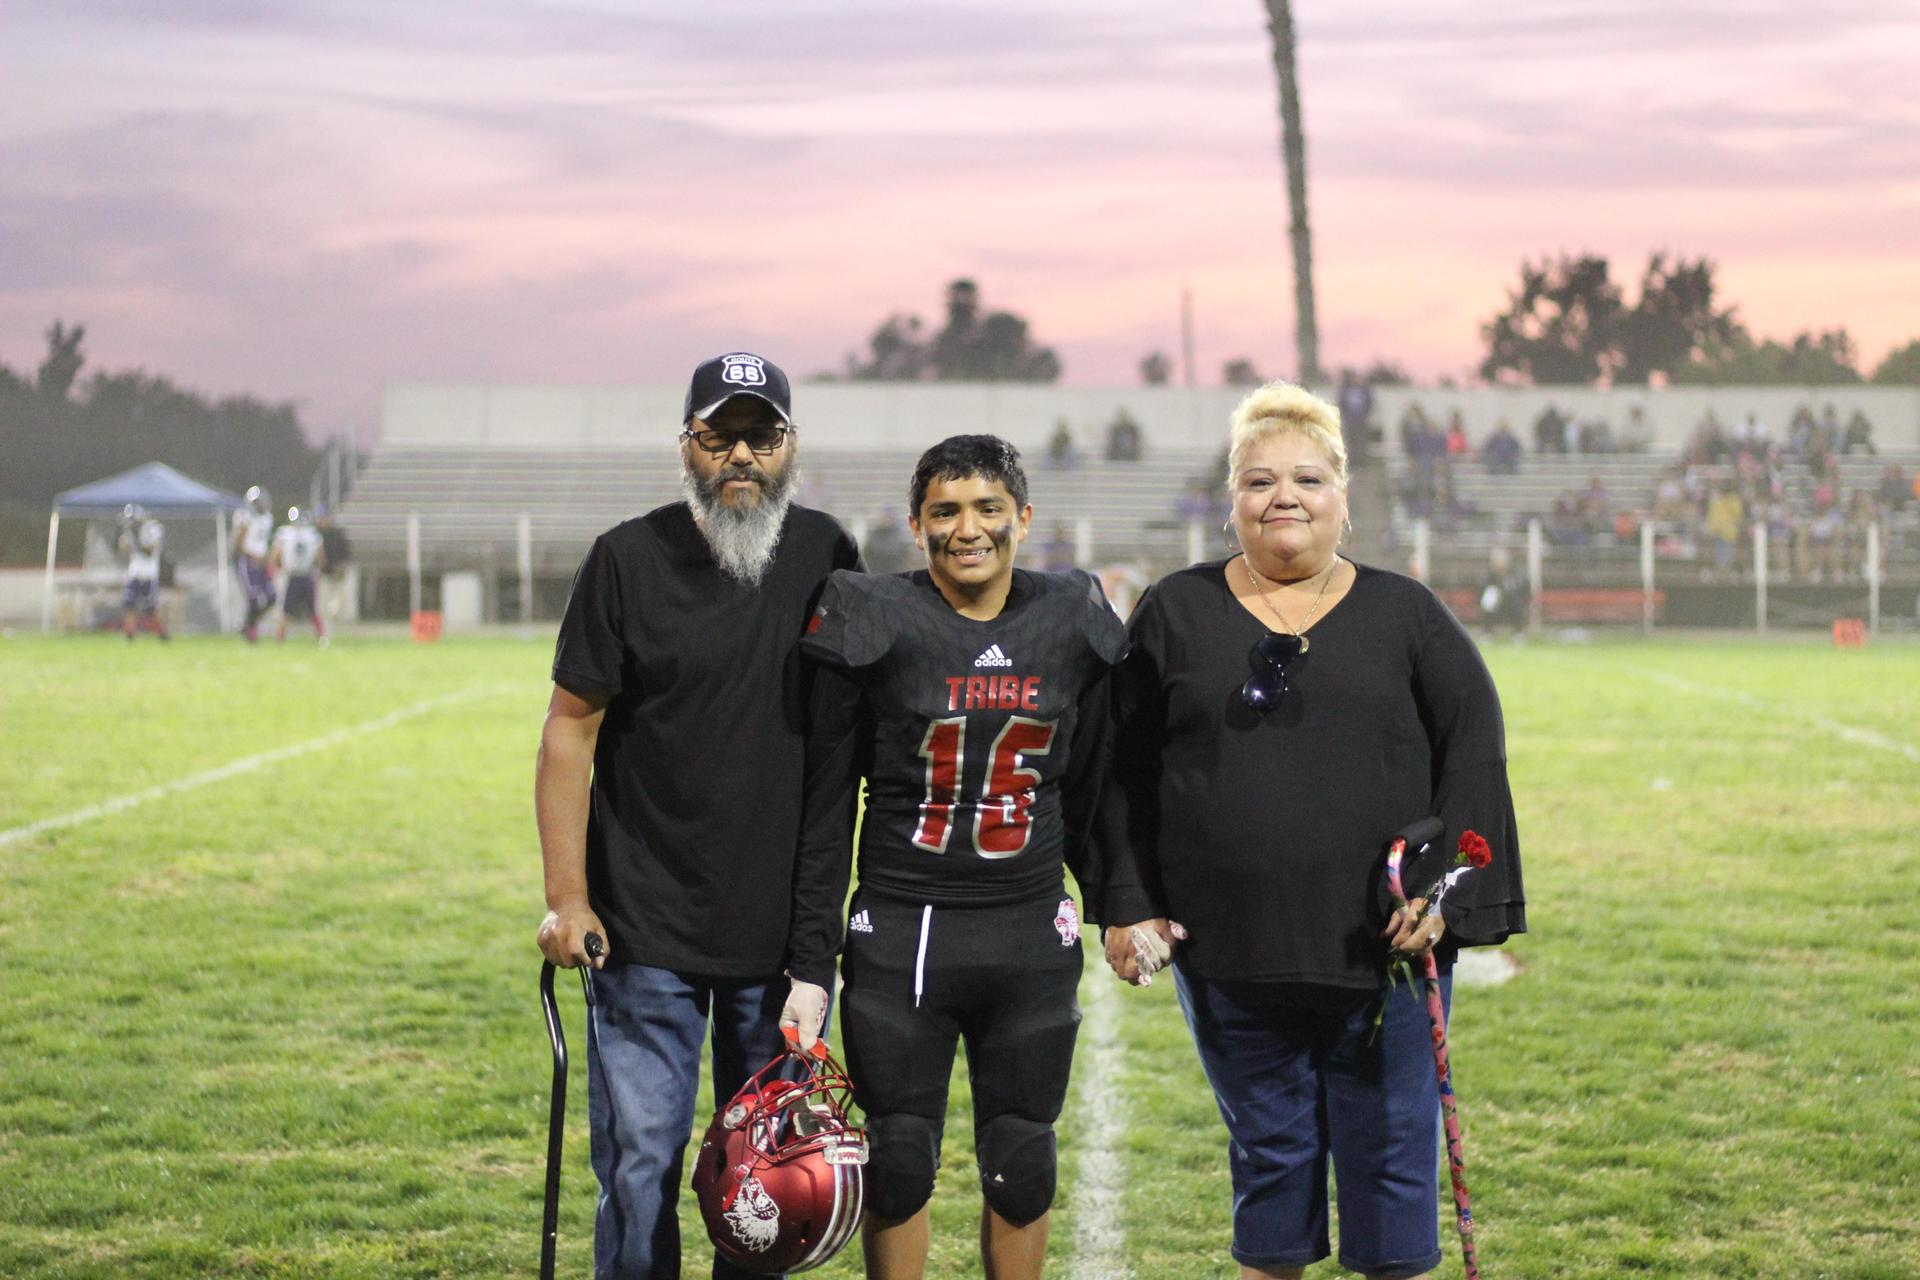 Senior football player Matthew Hernandez and his escorts.